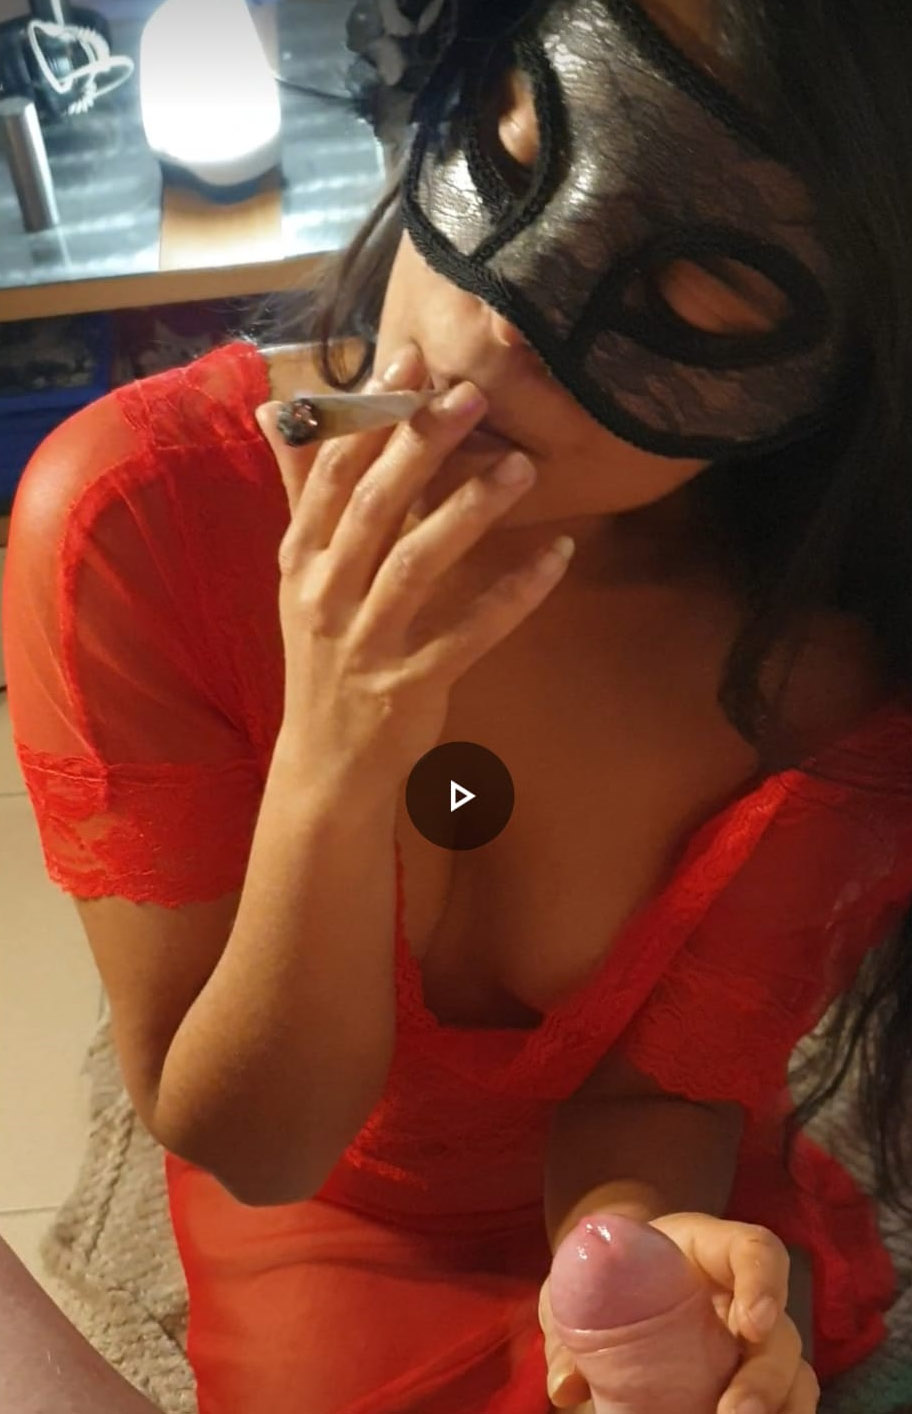 blowjob in red